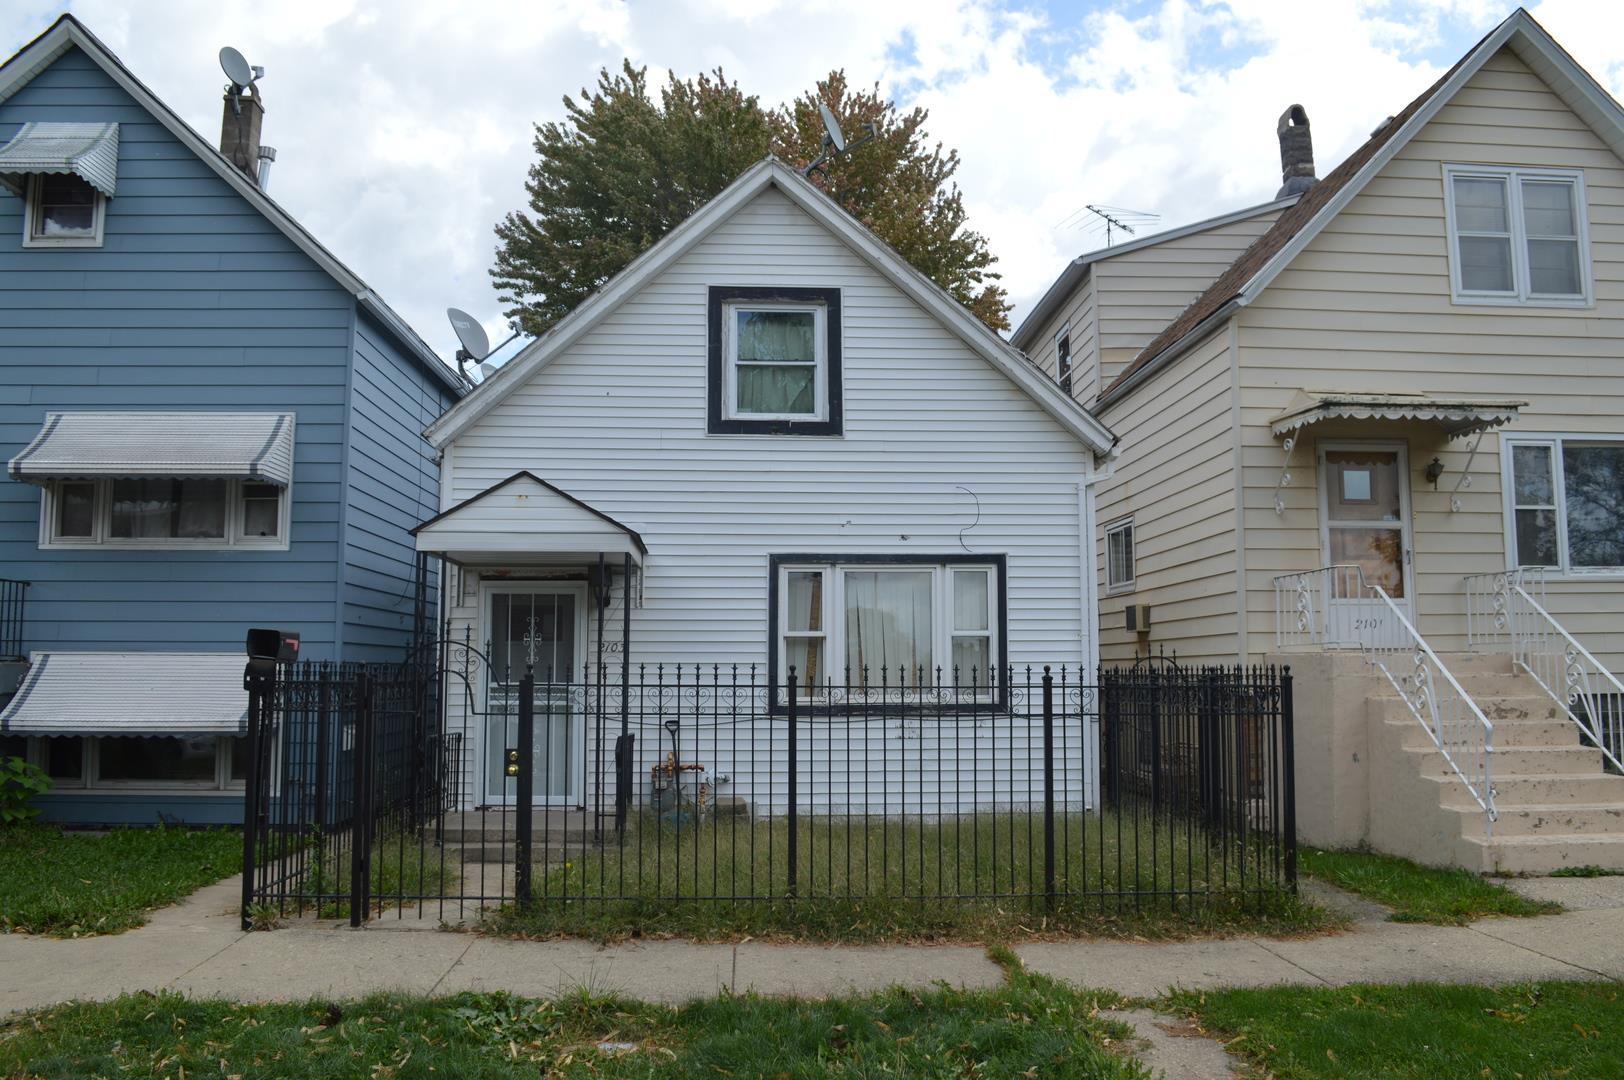 2103 N Long Avenue, Chicago, IL 60639 - #: 10887427